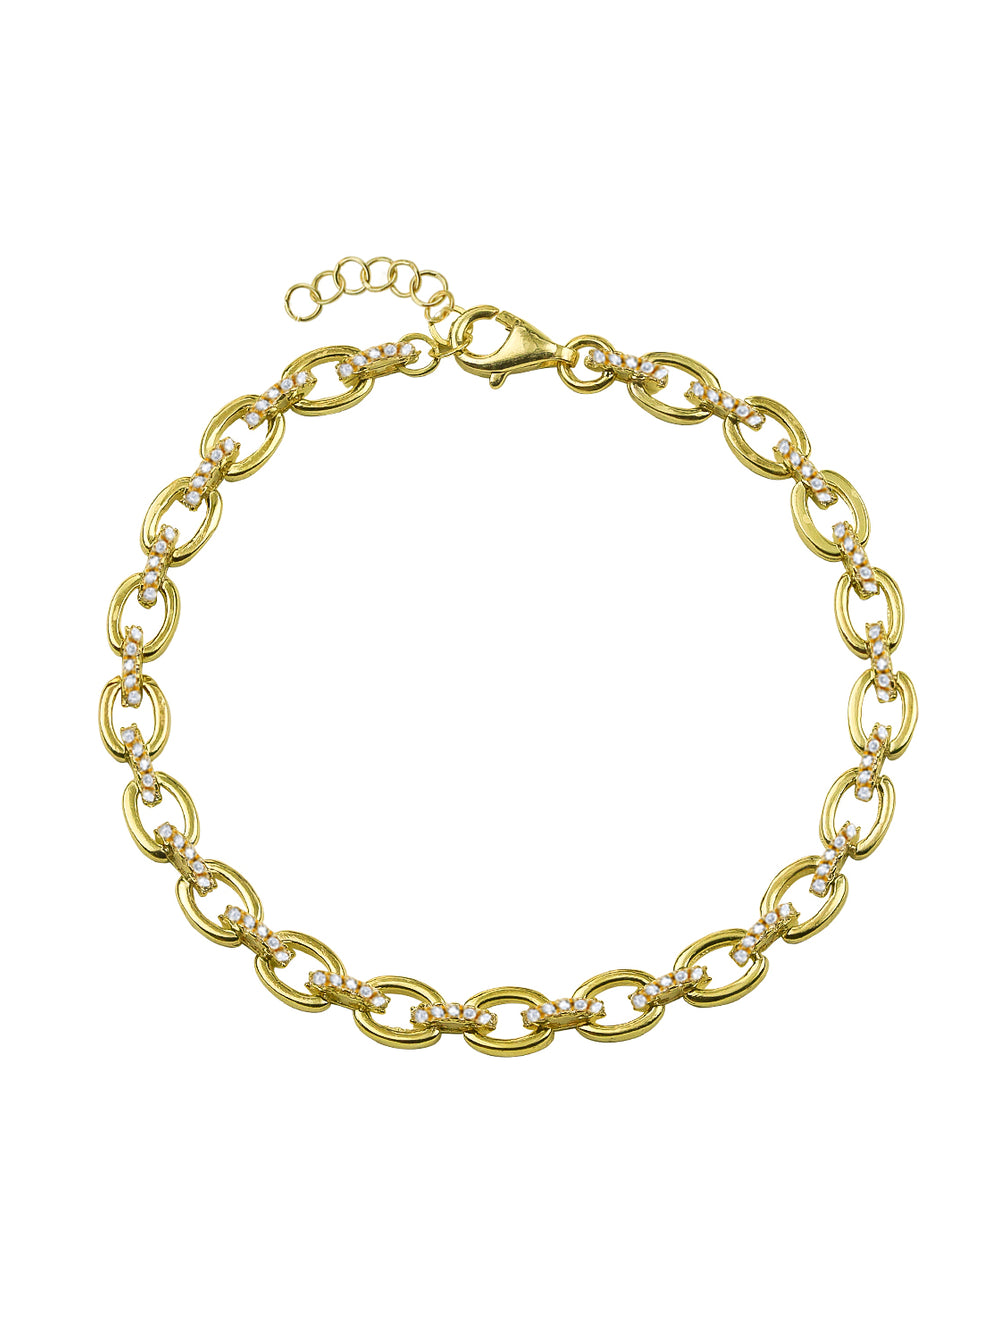 THE PAVE' ROLLO BRACELET